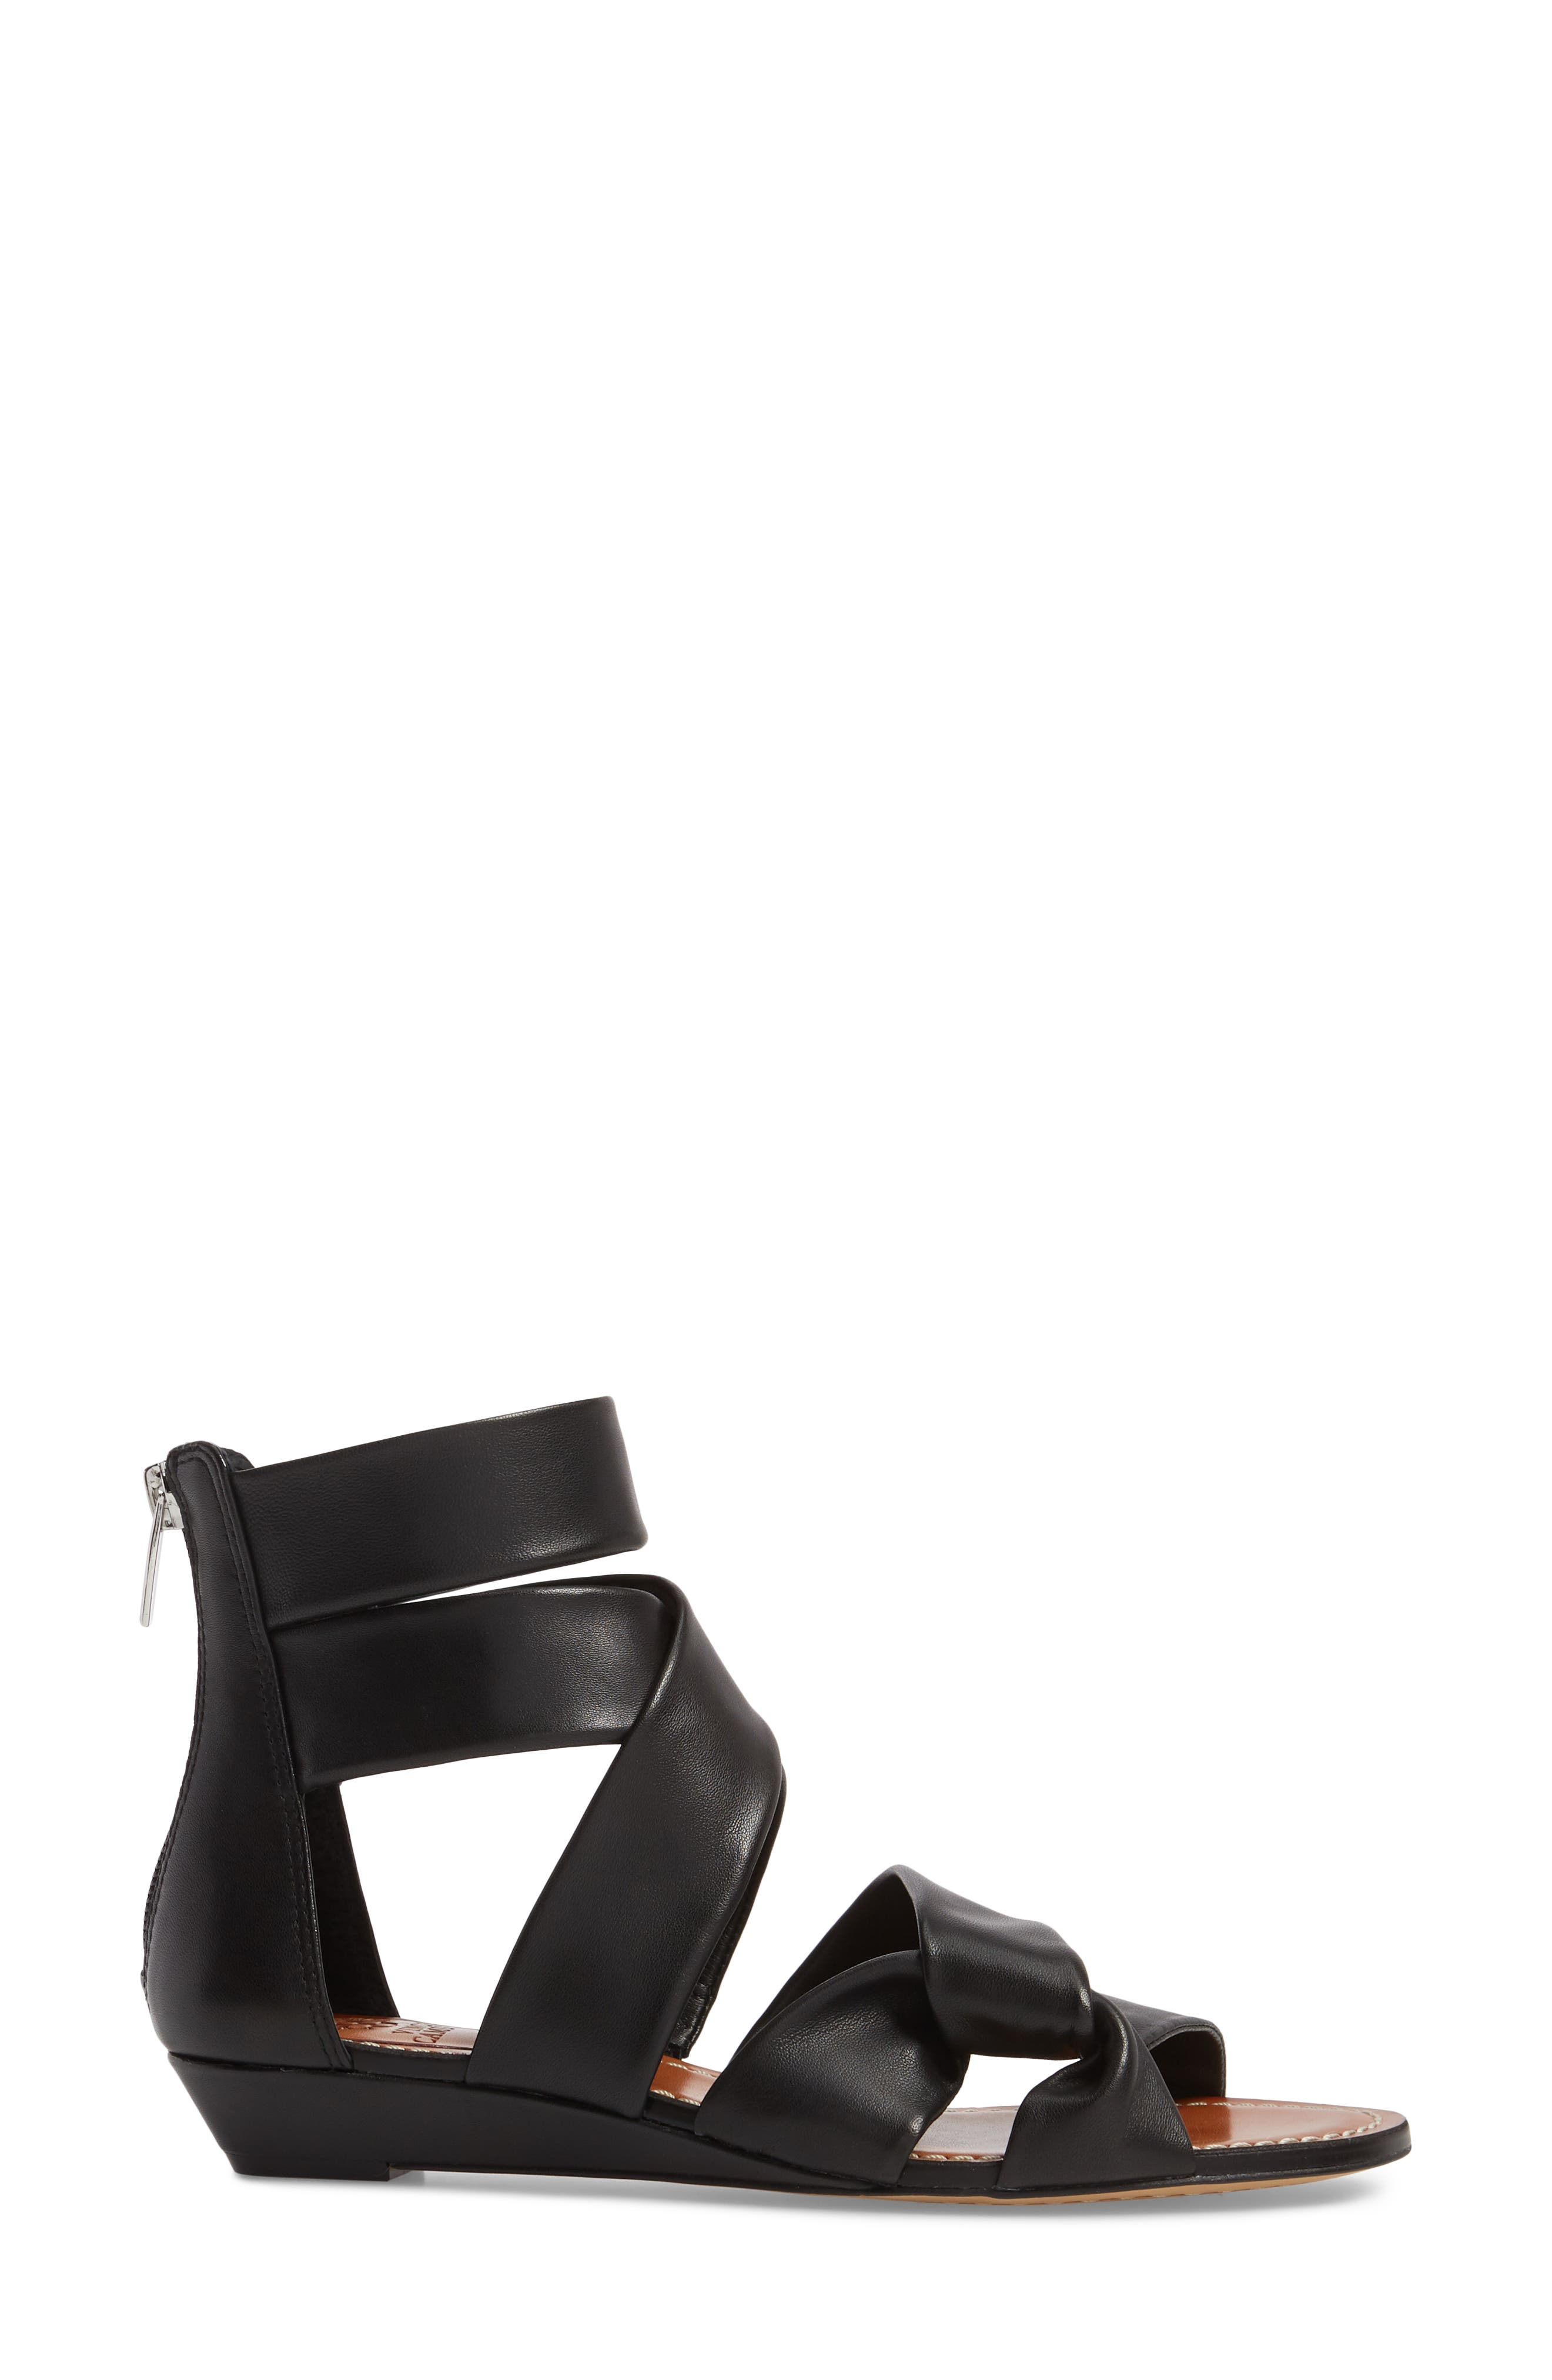 Seevina Low Wedge Sandal,                             Alternate thumbnail 3, color,                             BLACK LEATHER